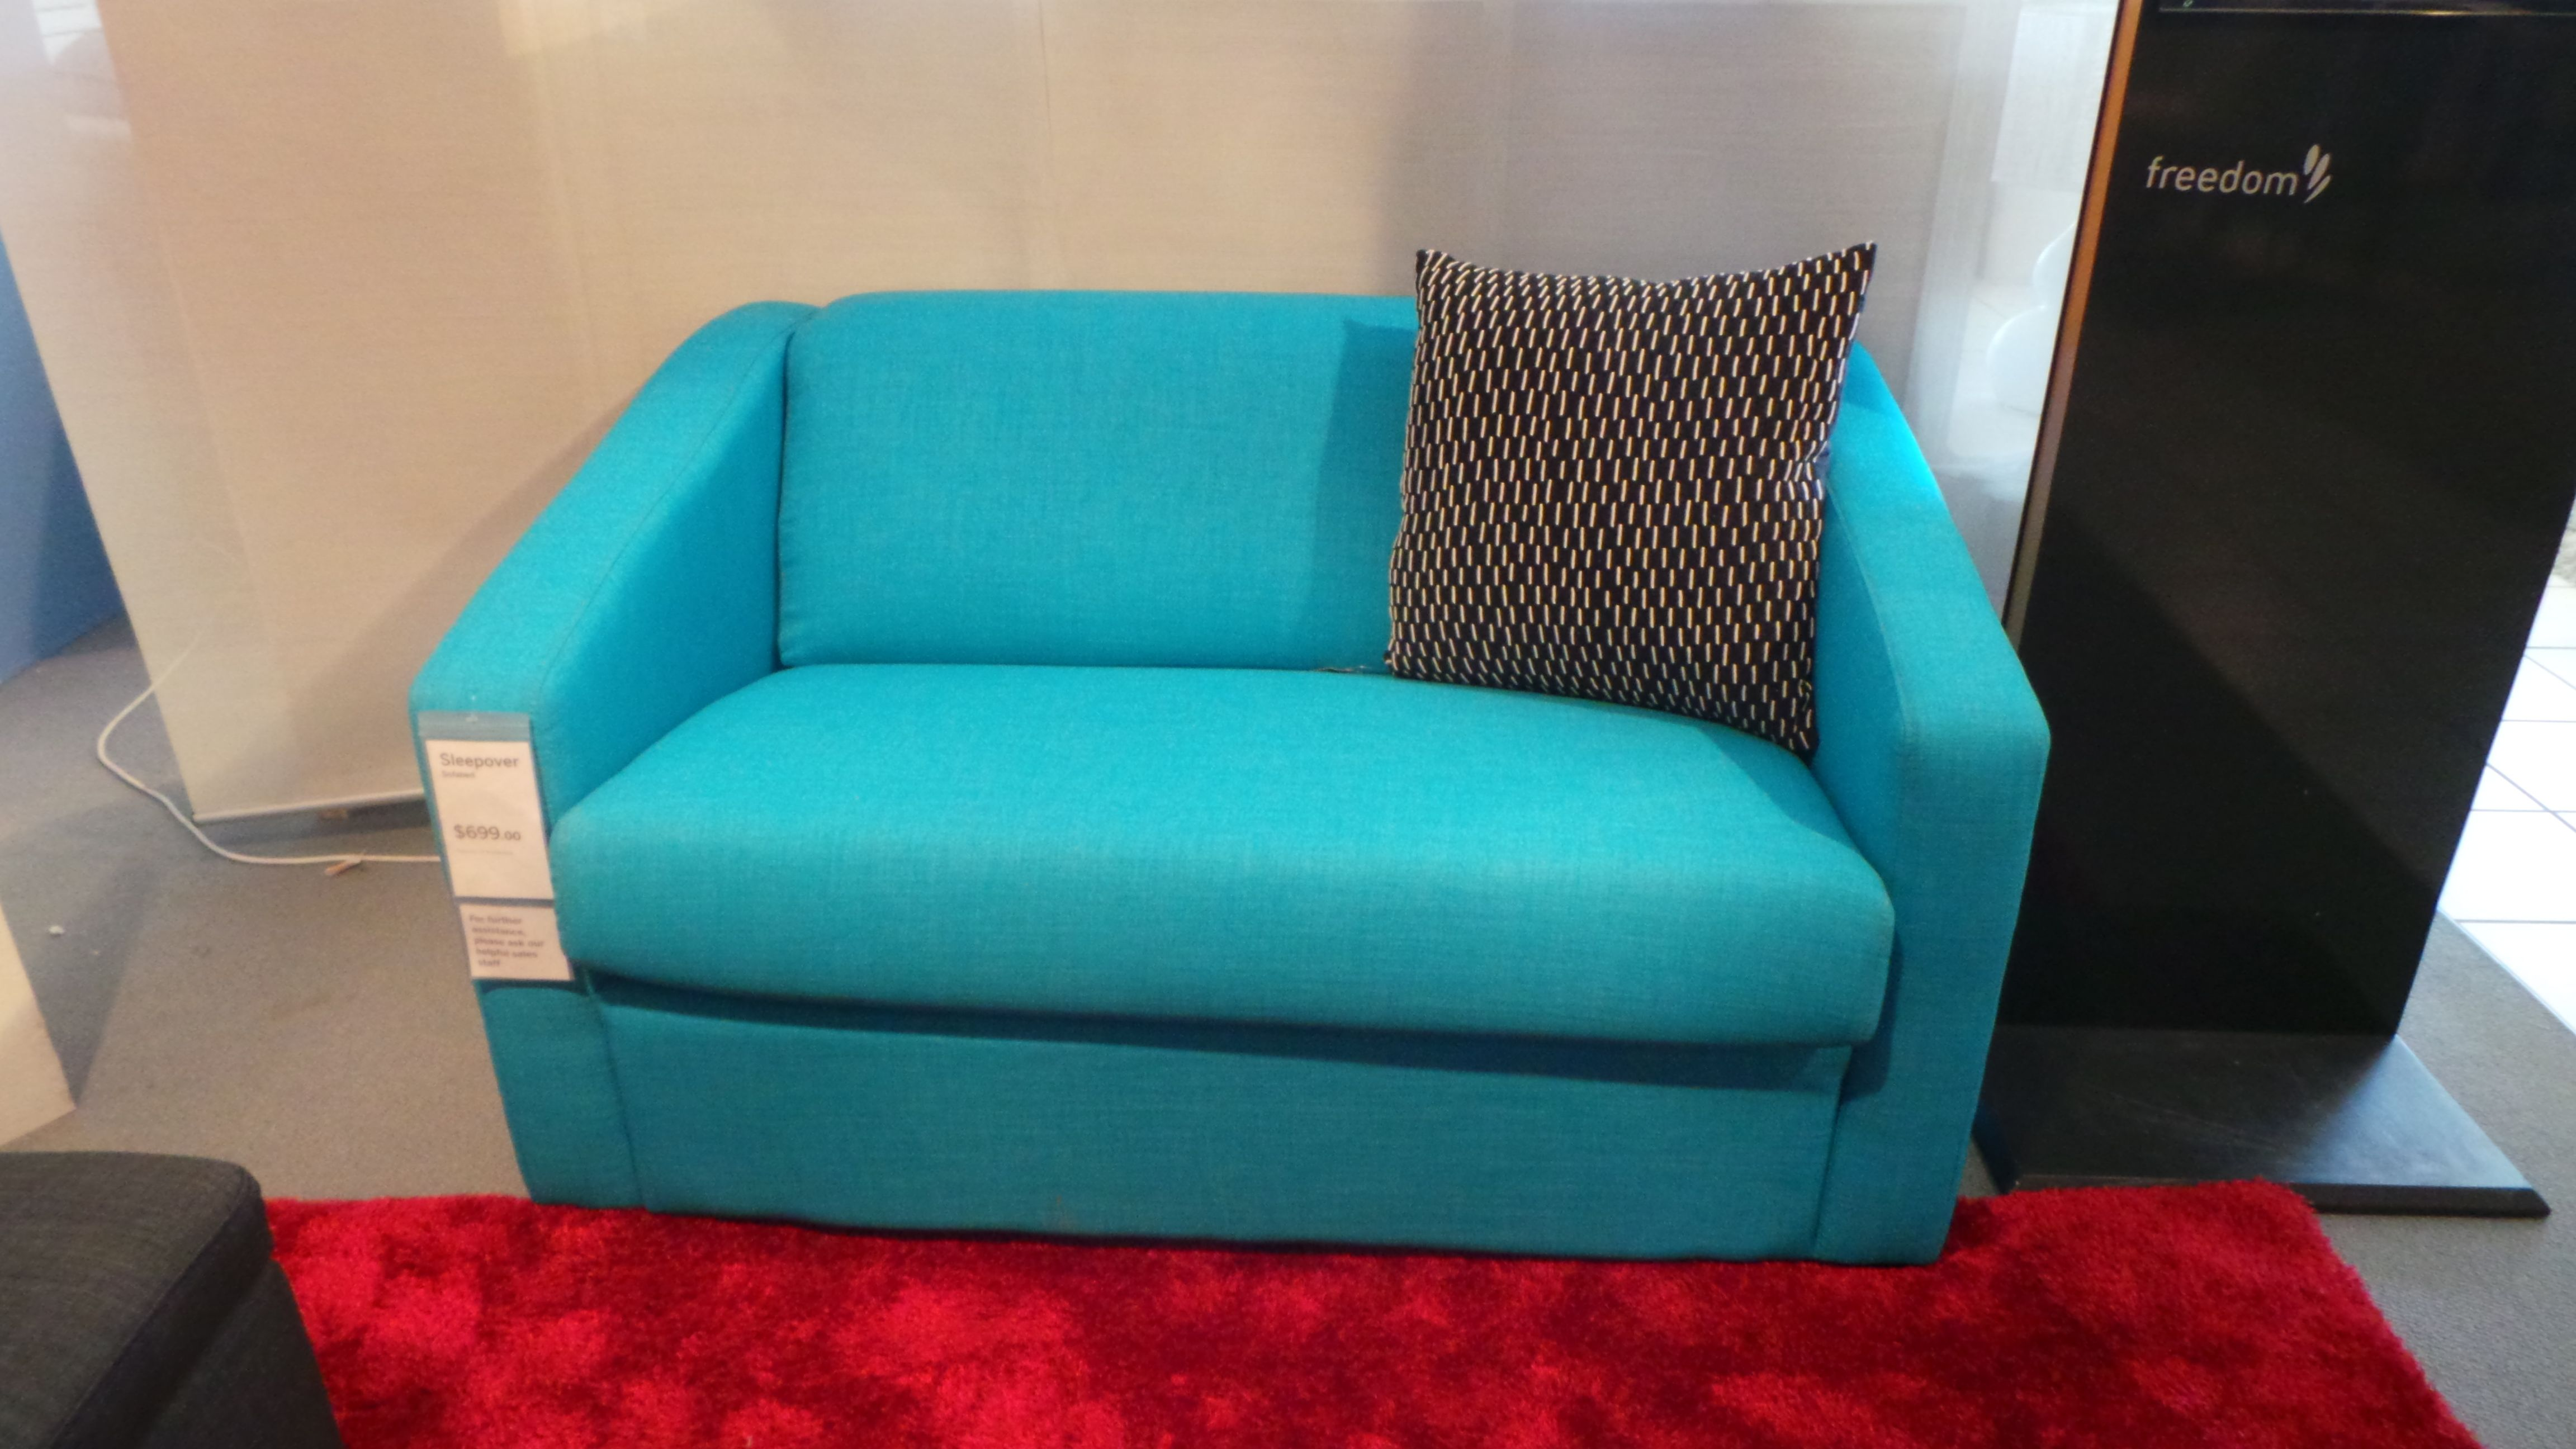 Freedom Furniture Couches Turquoise Sofa Bed Freedom Furniture Room Pinterest